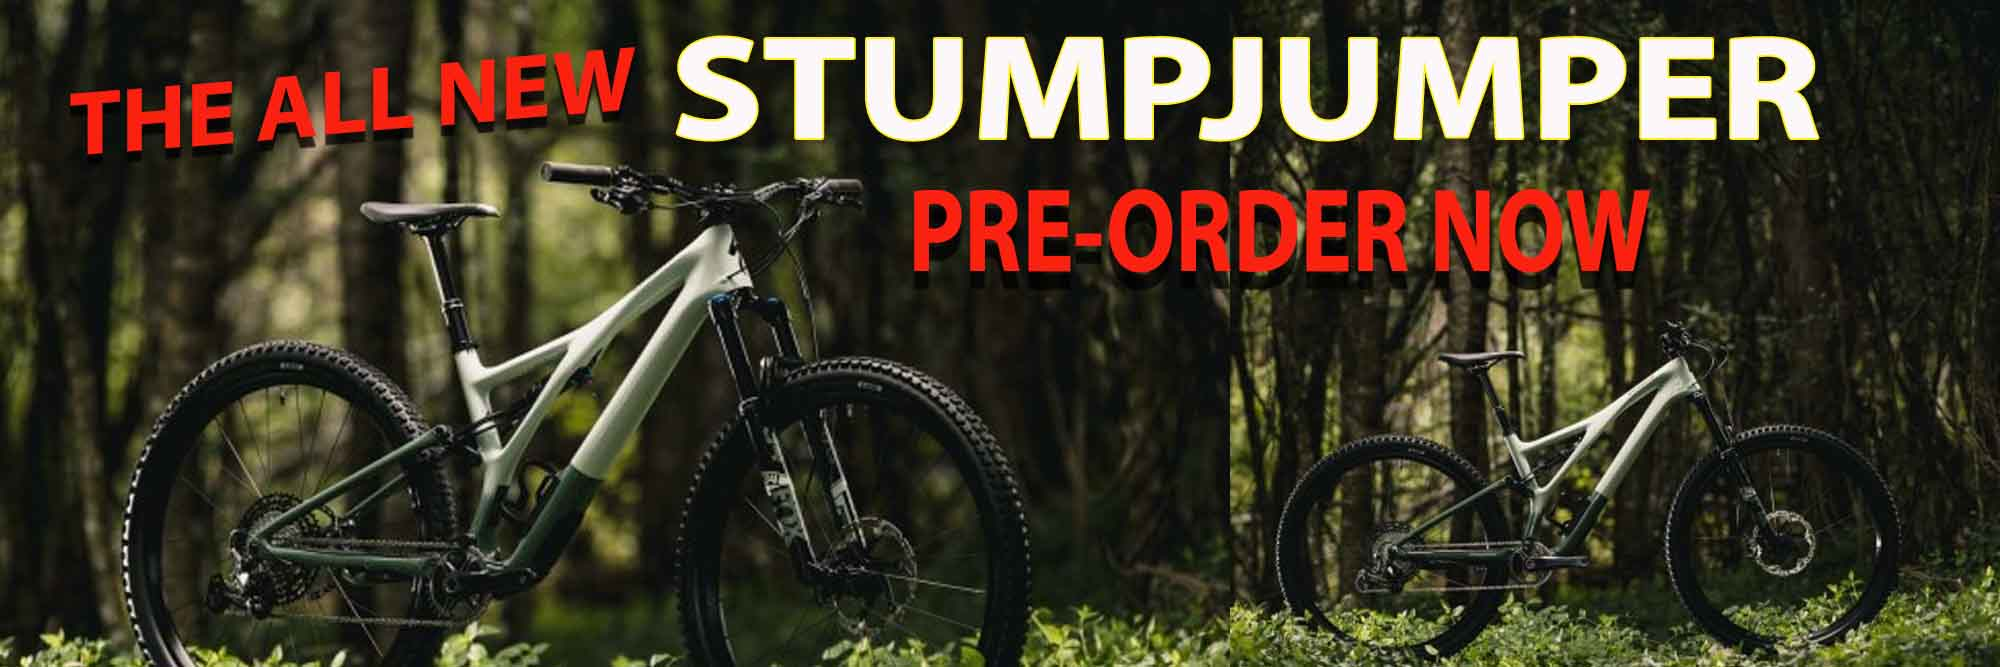 The All New Stumpjumper - Pre-Order Now